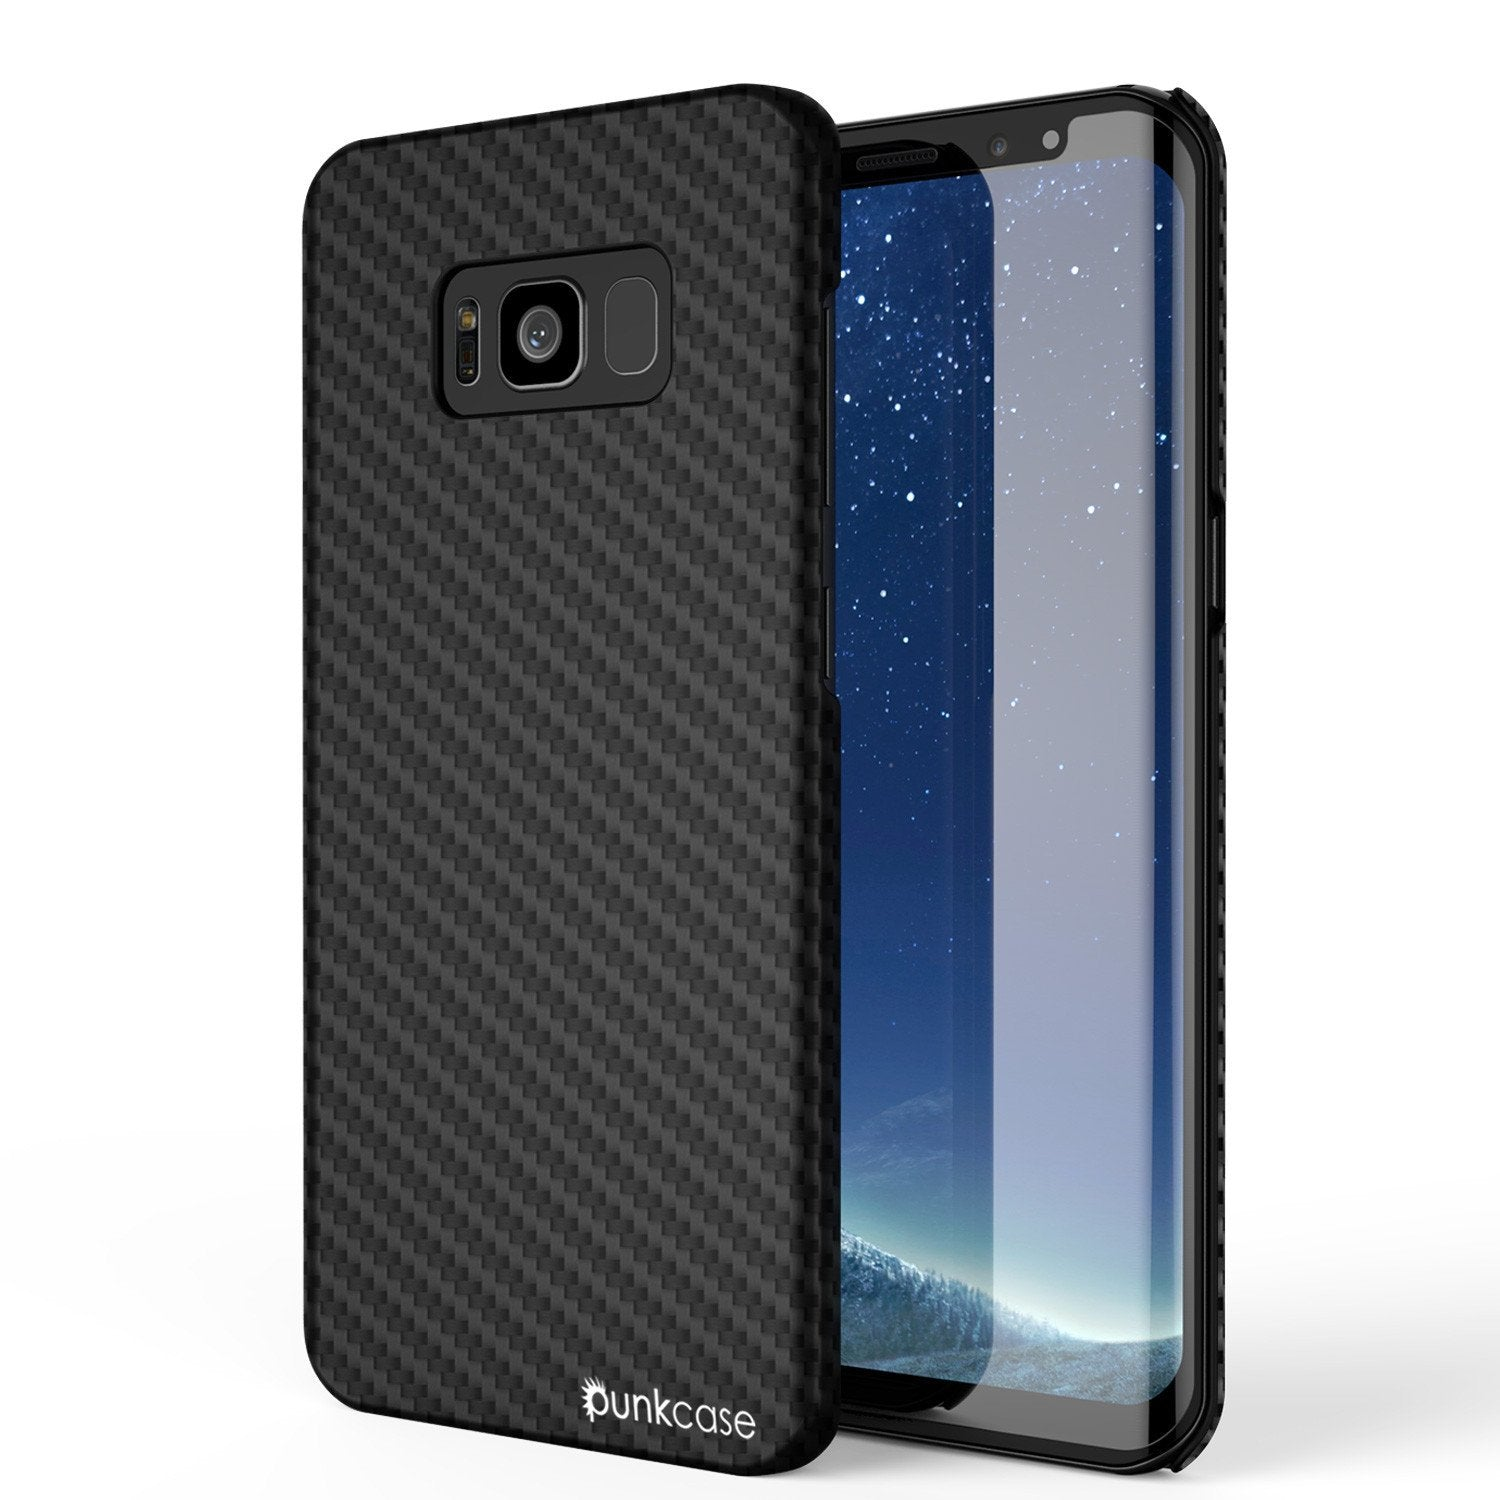 Galaxy S8 Case, PunkCase CarbonShield, Jet Black - PunkCase NZ